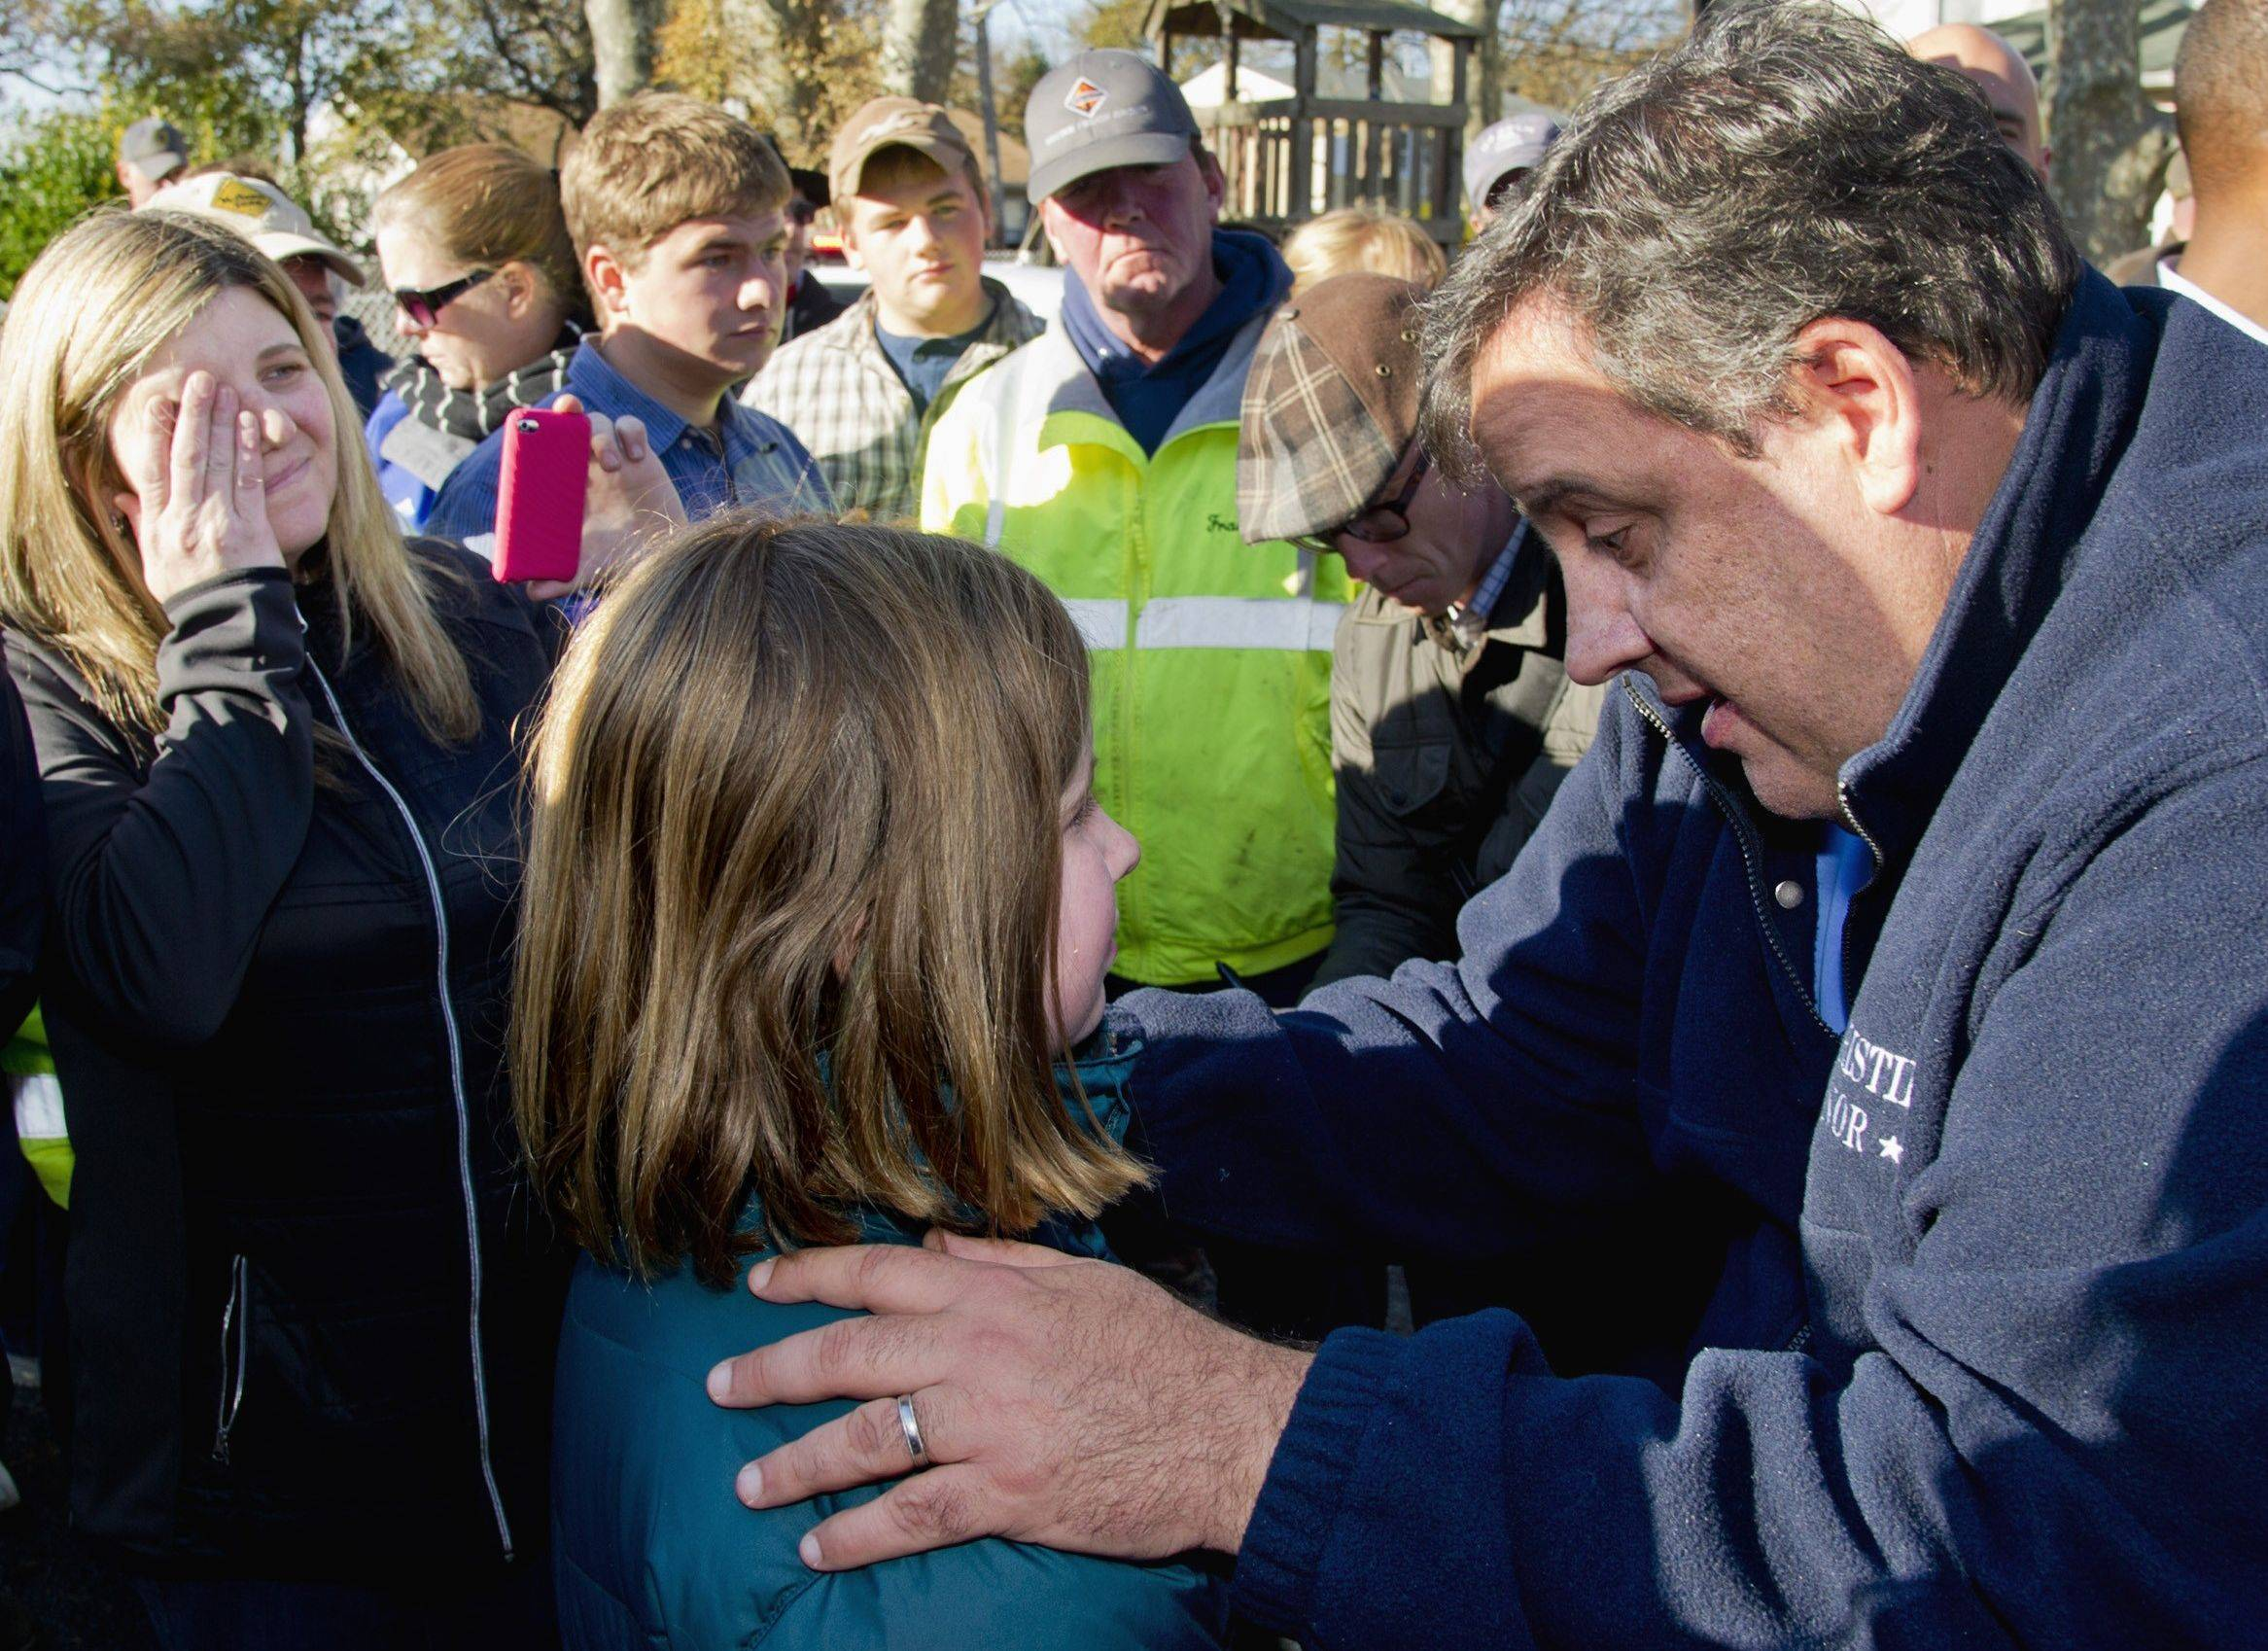 New Jersey Gov. Chris Christie gives 9-year-old Ginjer Doherty a pep talk outside in Port Monmouth, N.J., where he visited residents